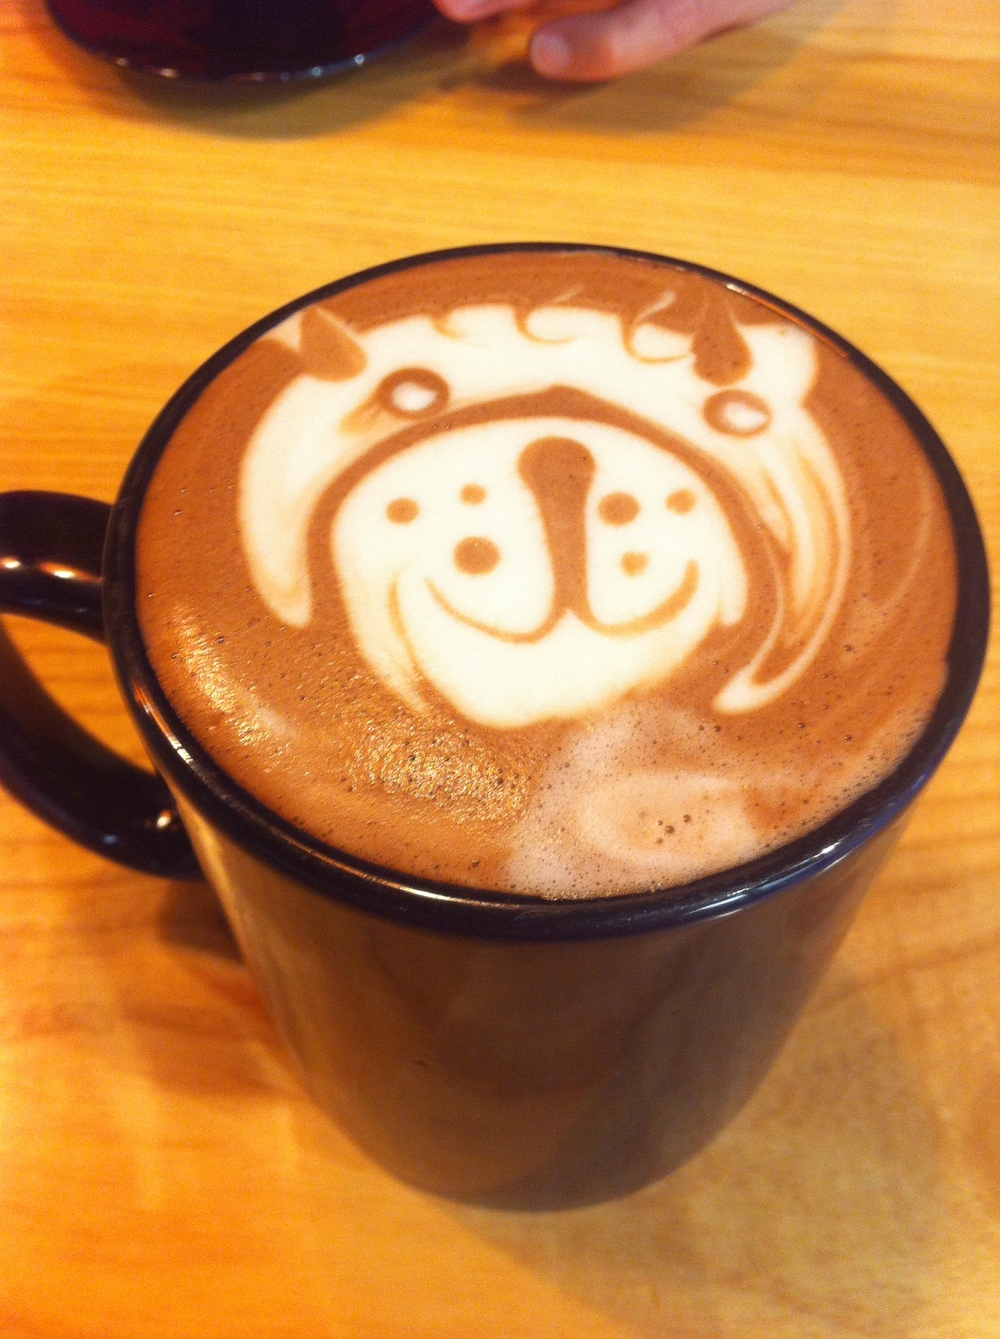 My early morning best friends, Patrick, Brian and Dave, the amazing barista's at my local coffee spot, serve me up an early morning   'Lioness Hot Chocolate'  . Their artistry and ever cheerful mood always gets my day started on just the right note. Purrrrr!